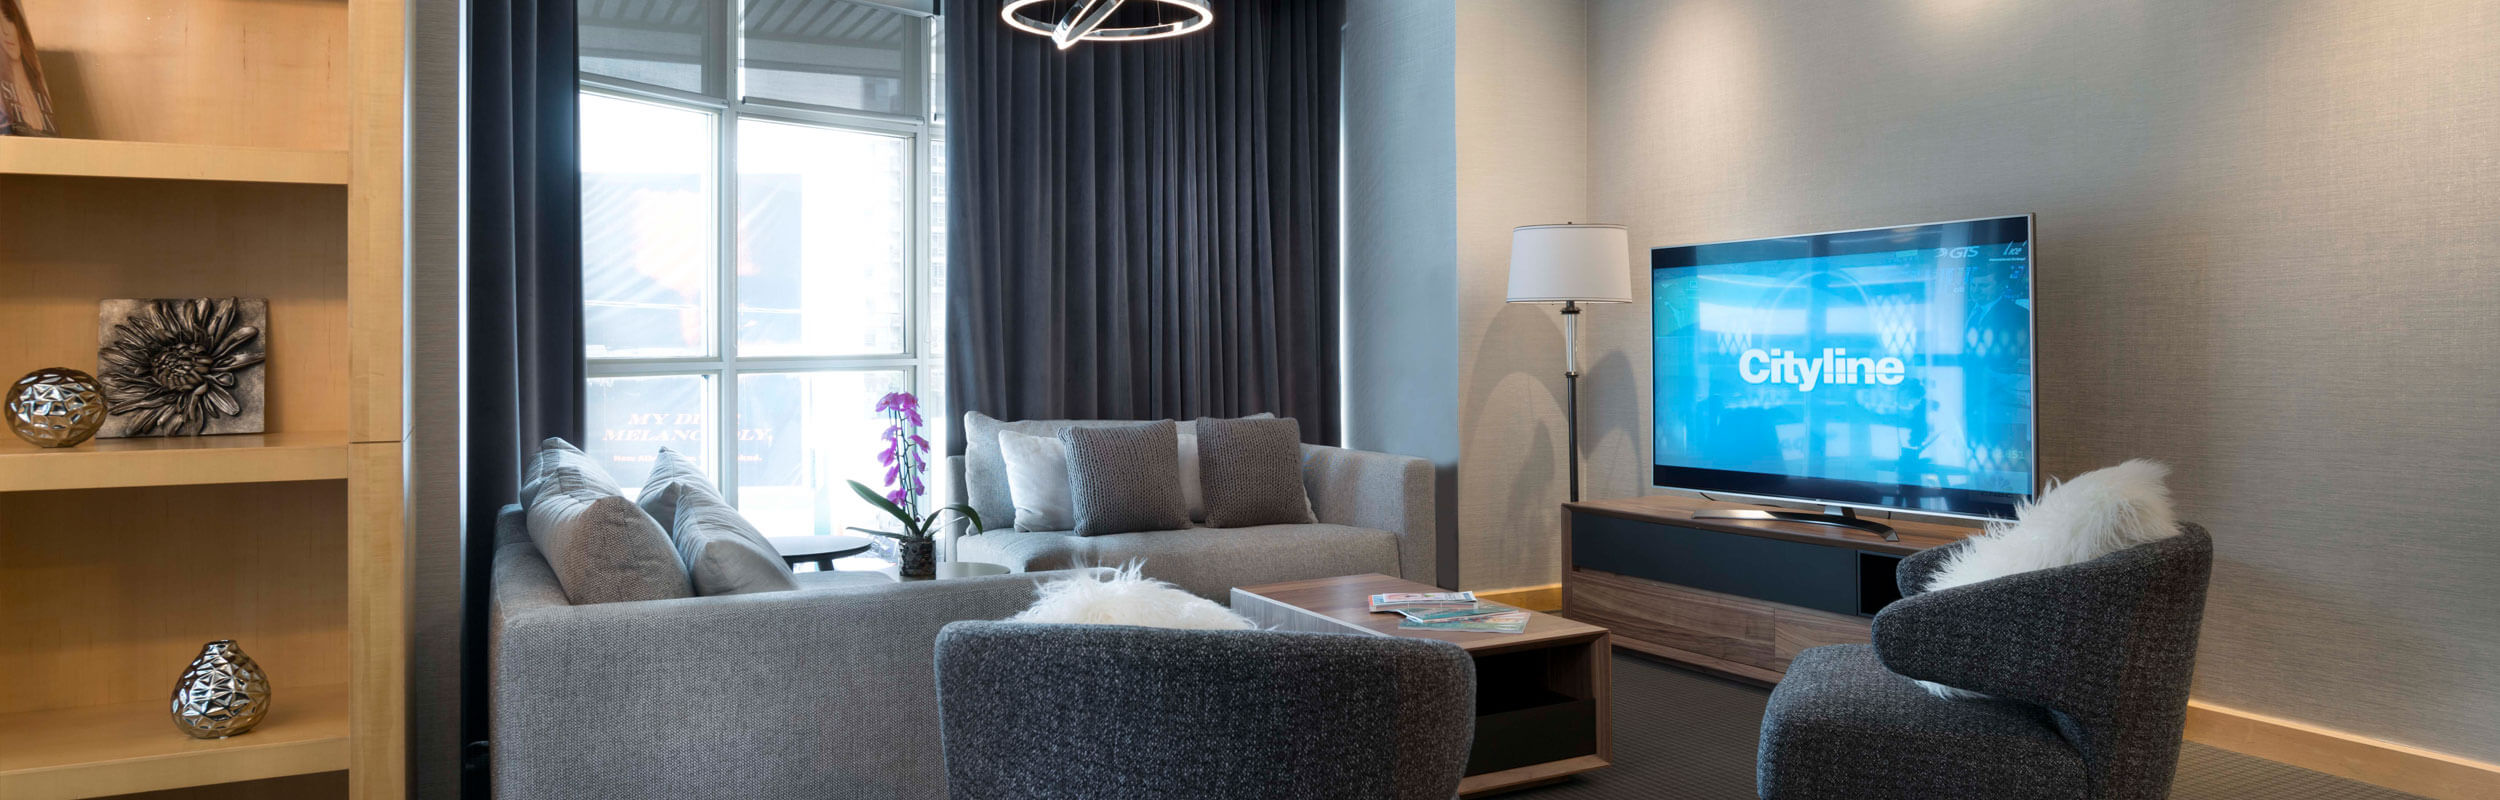 SoHo Hotel - The SoHo suite with separate living area